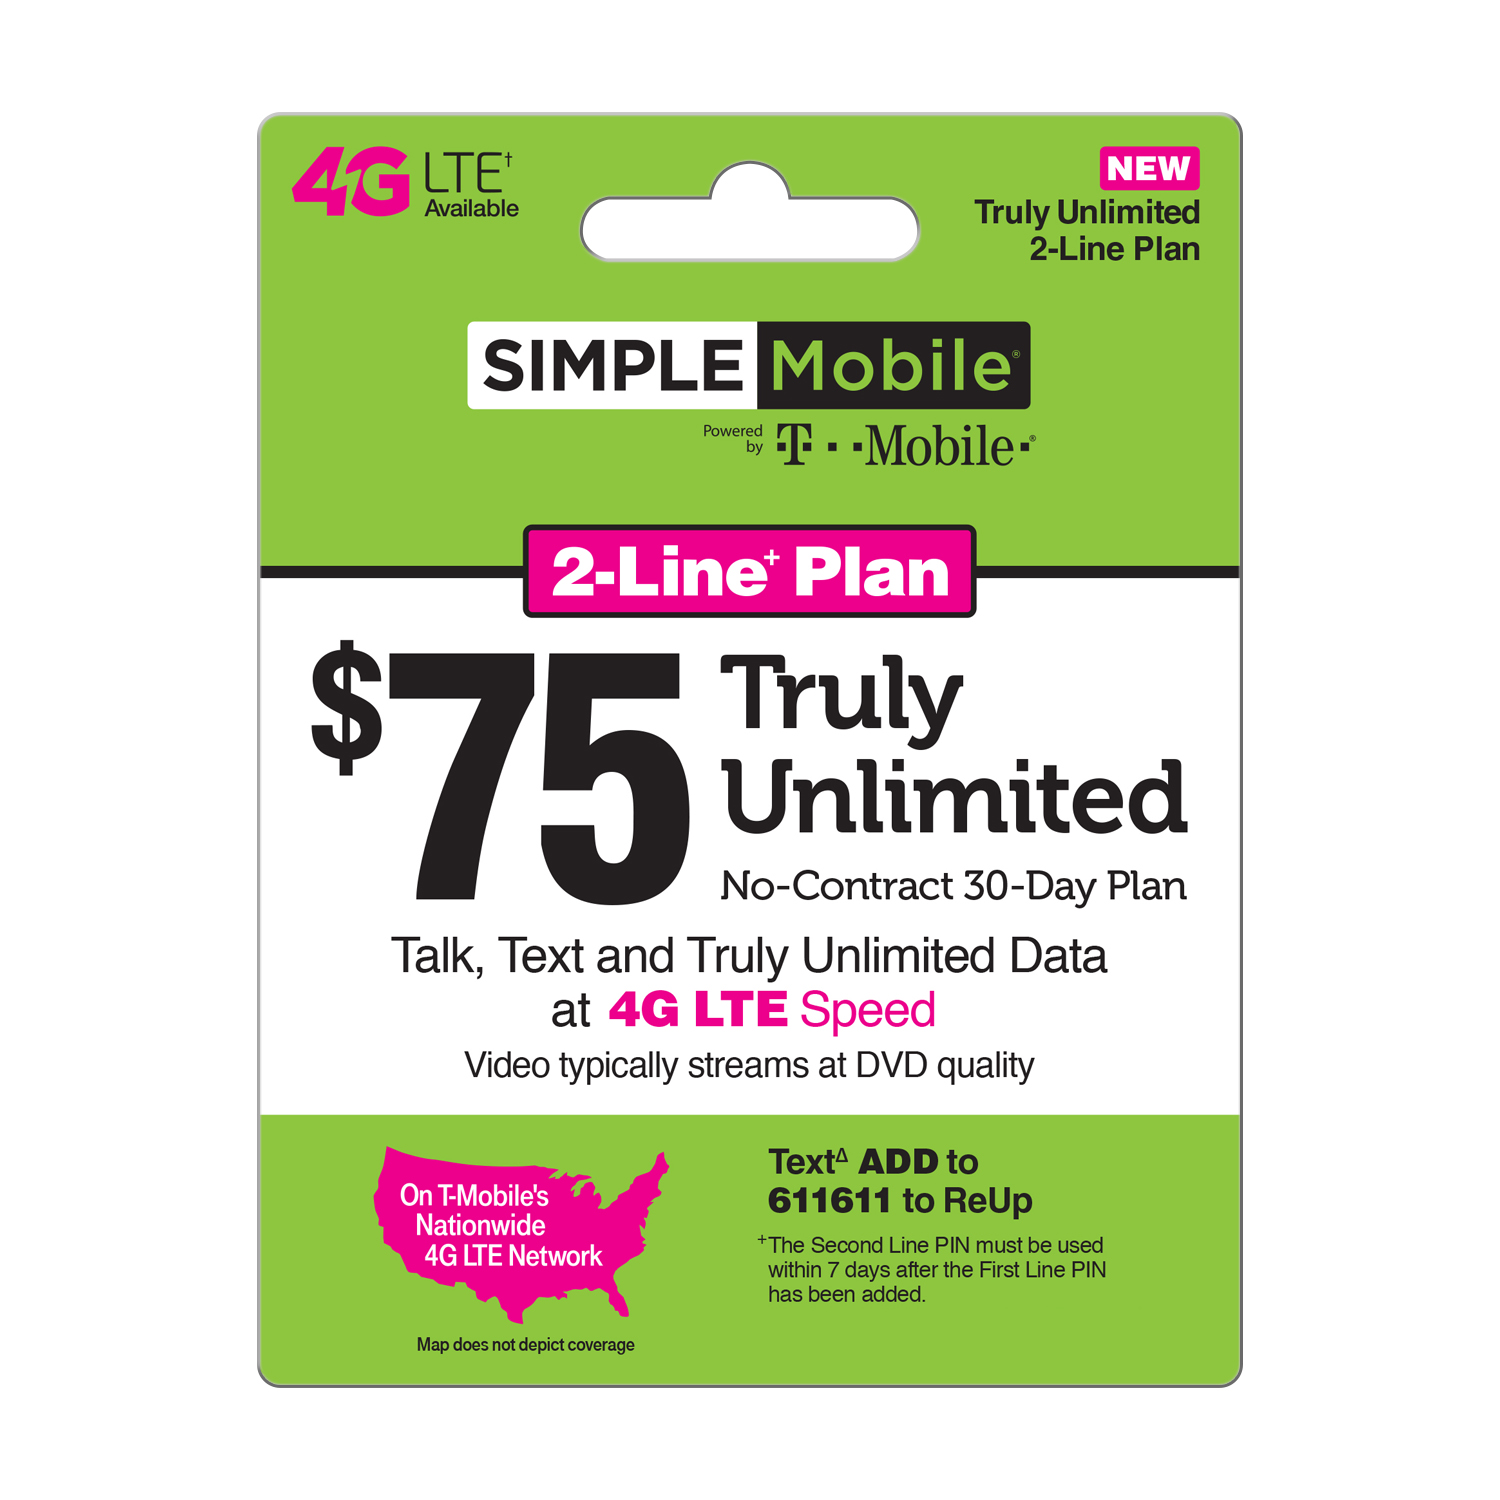 Simple Mobile TRULY UNLIMITED 4G LTE Data, Talk & Text 30-Day - 2-Line+ plan, $75 (Video streams at 480P) (Email Delivery)